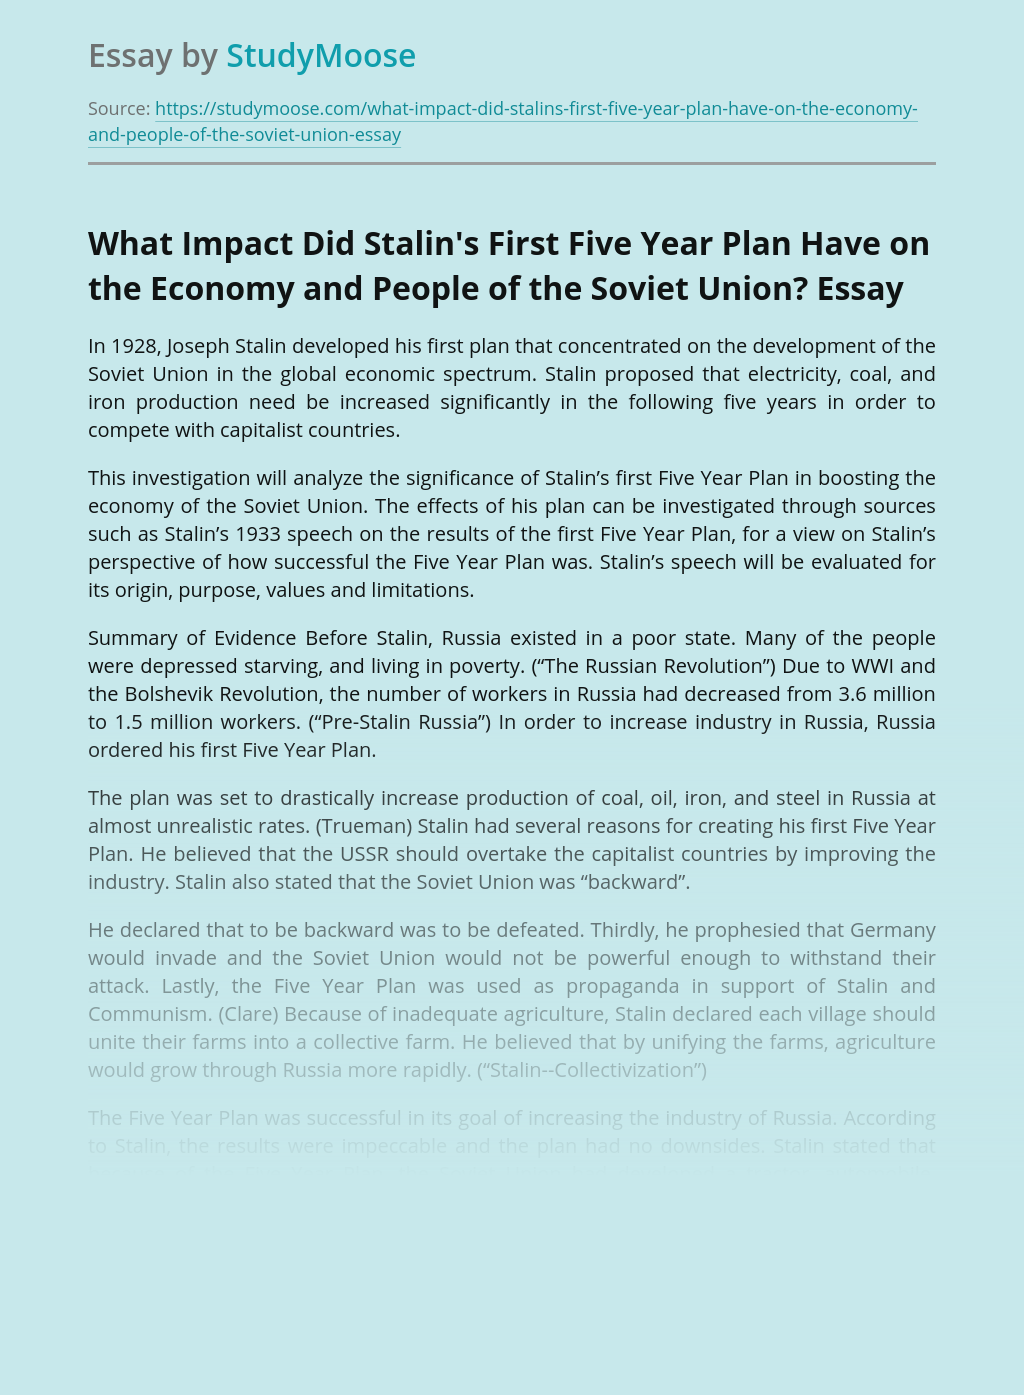 What Impact Did Stalin's First Five Year Plan Have on the Economy and People of the Soviet Union?